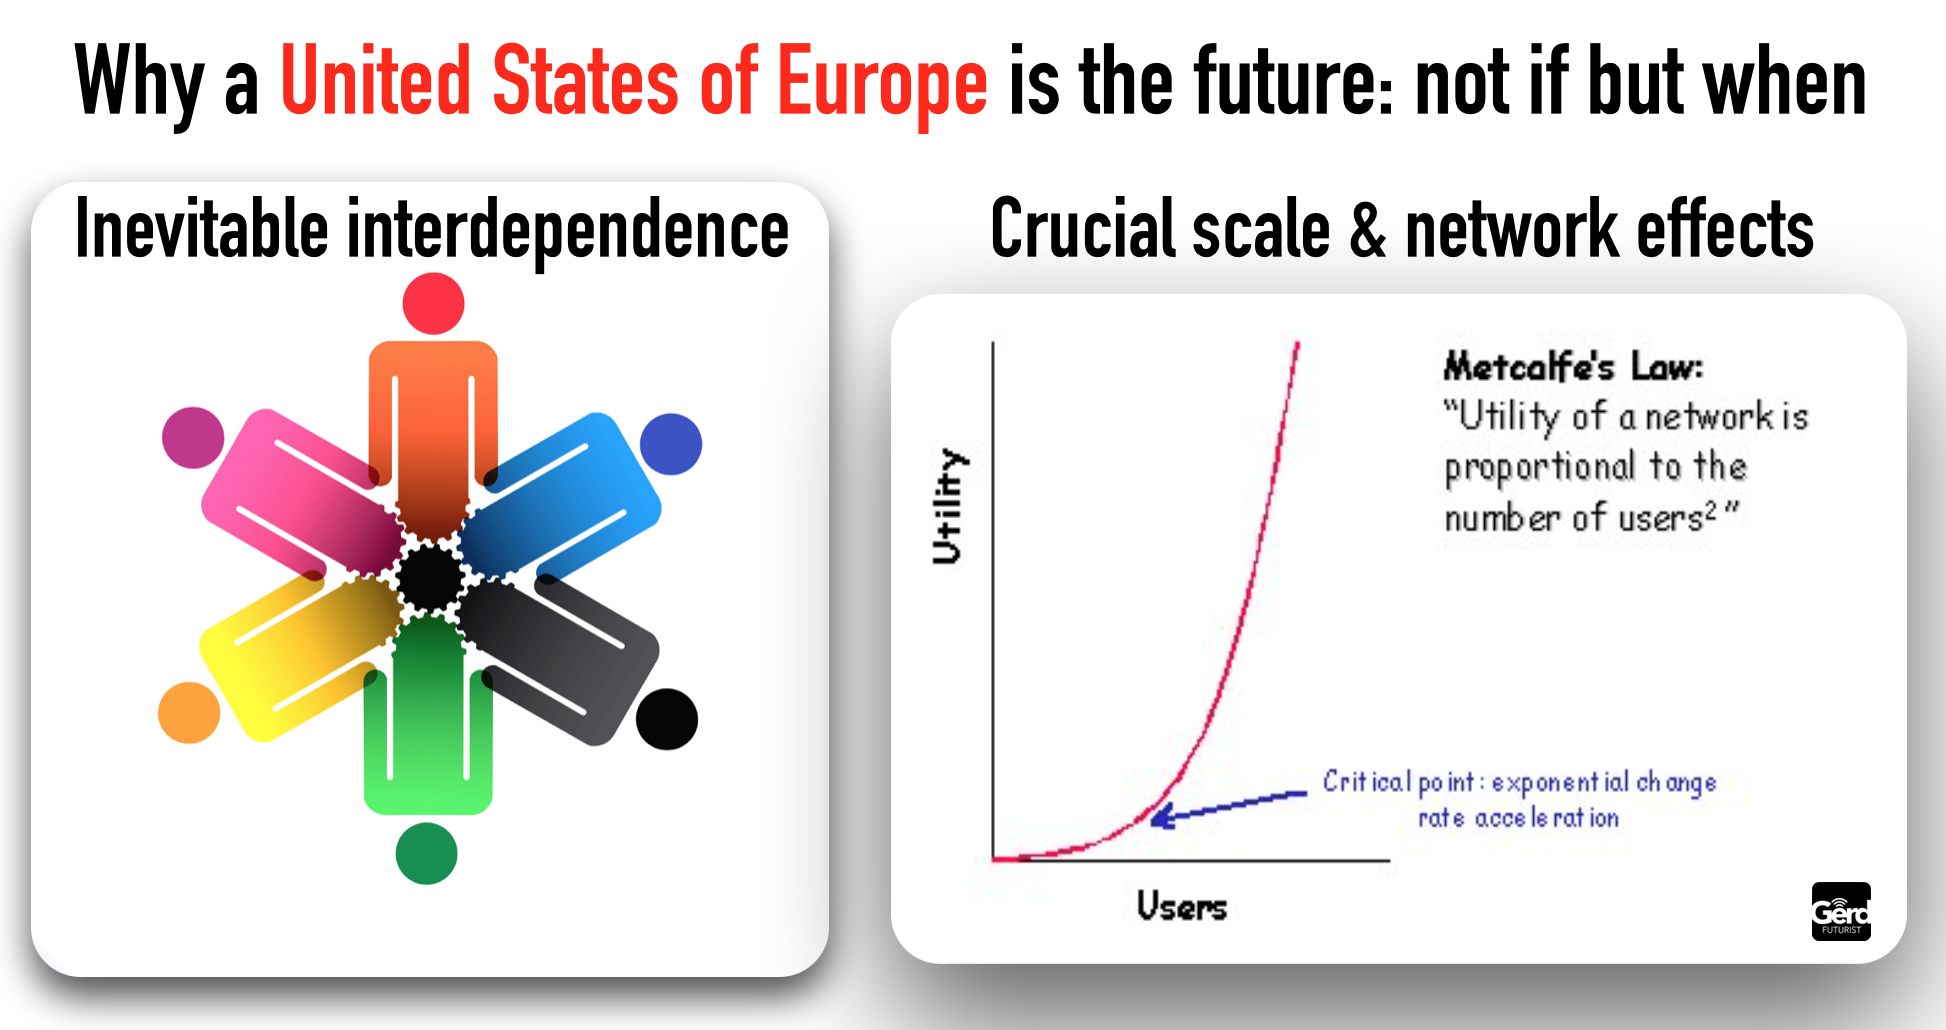 United States of Europe Gerd Leonhard Futurist